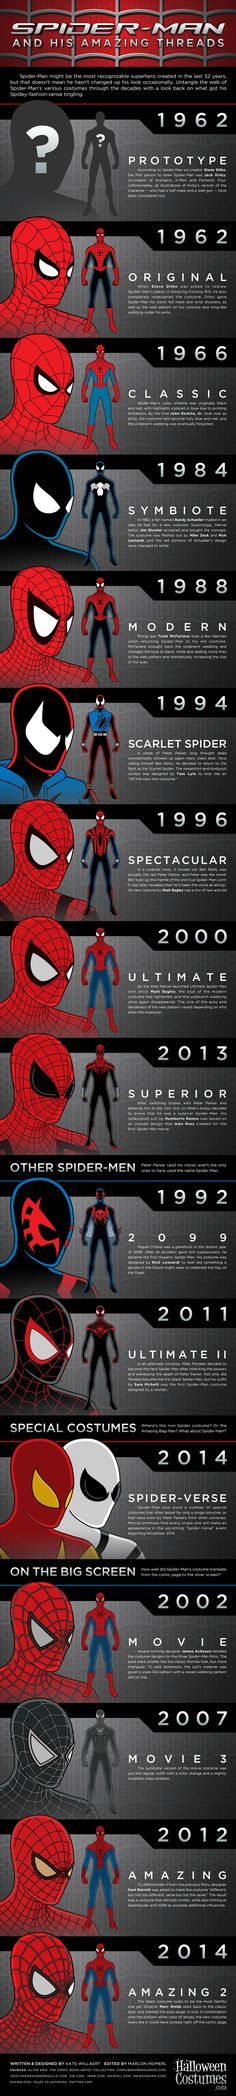 Spider-man Uniforms ---as far as im concerned, hi IS an avenger! viva spidey!!